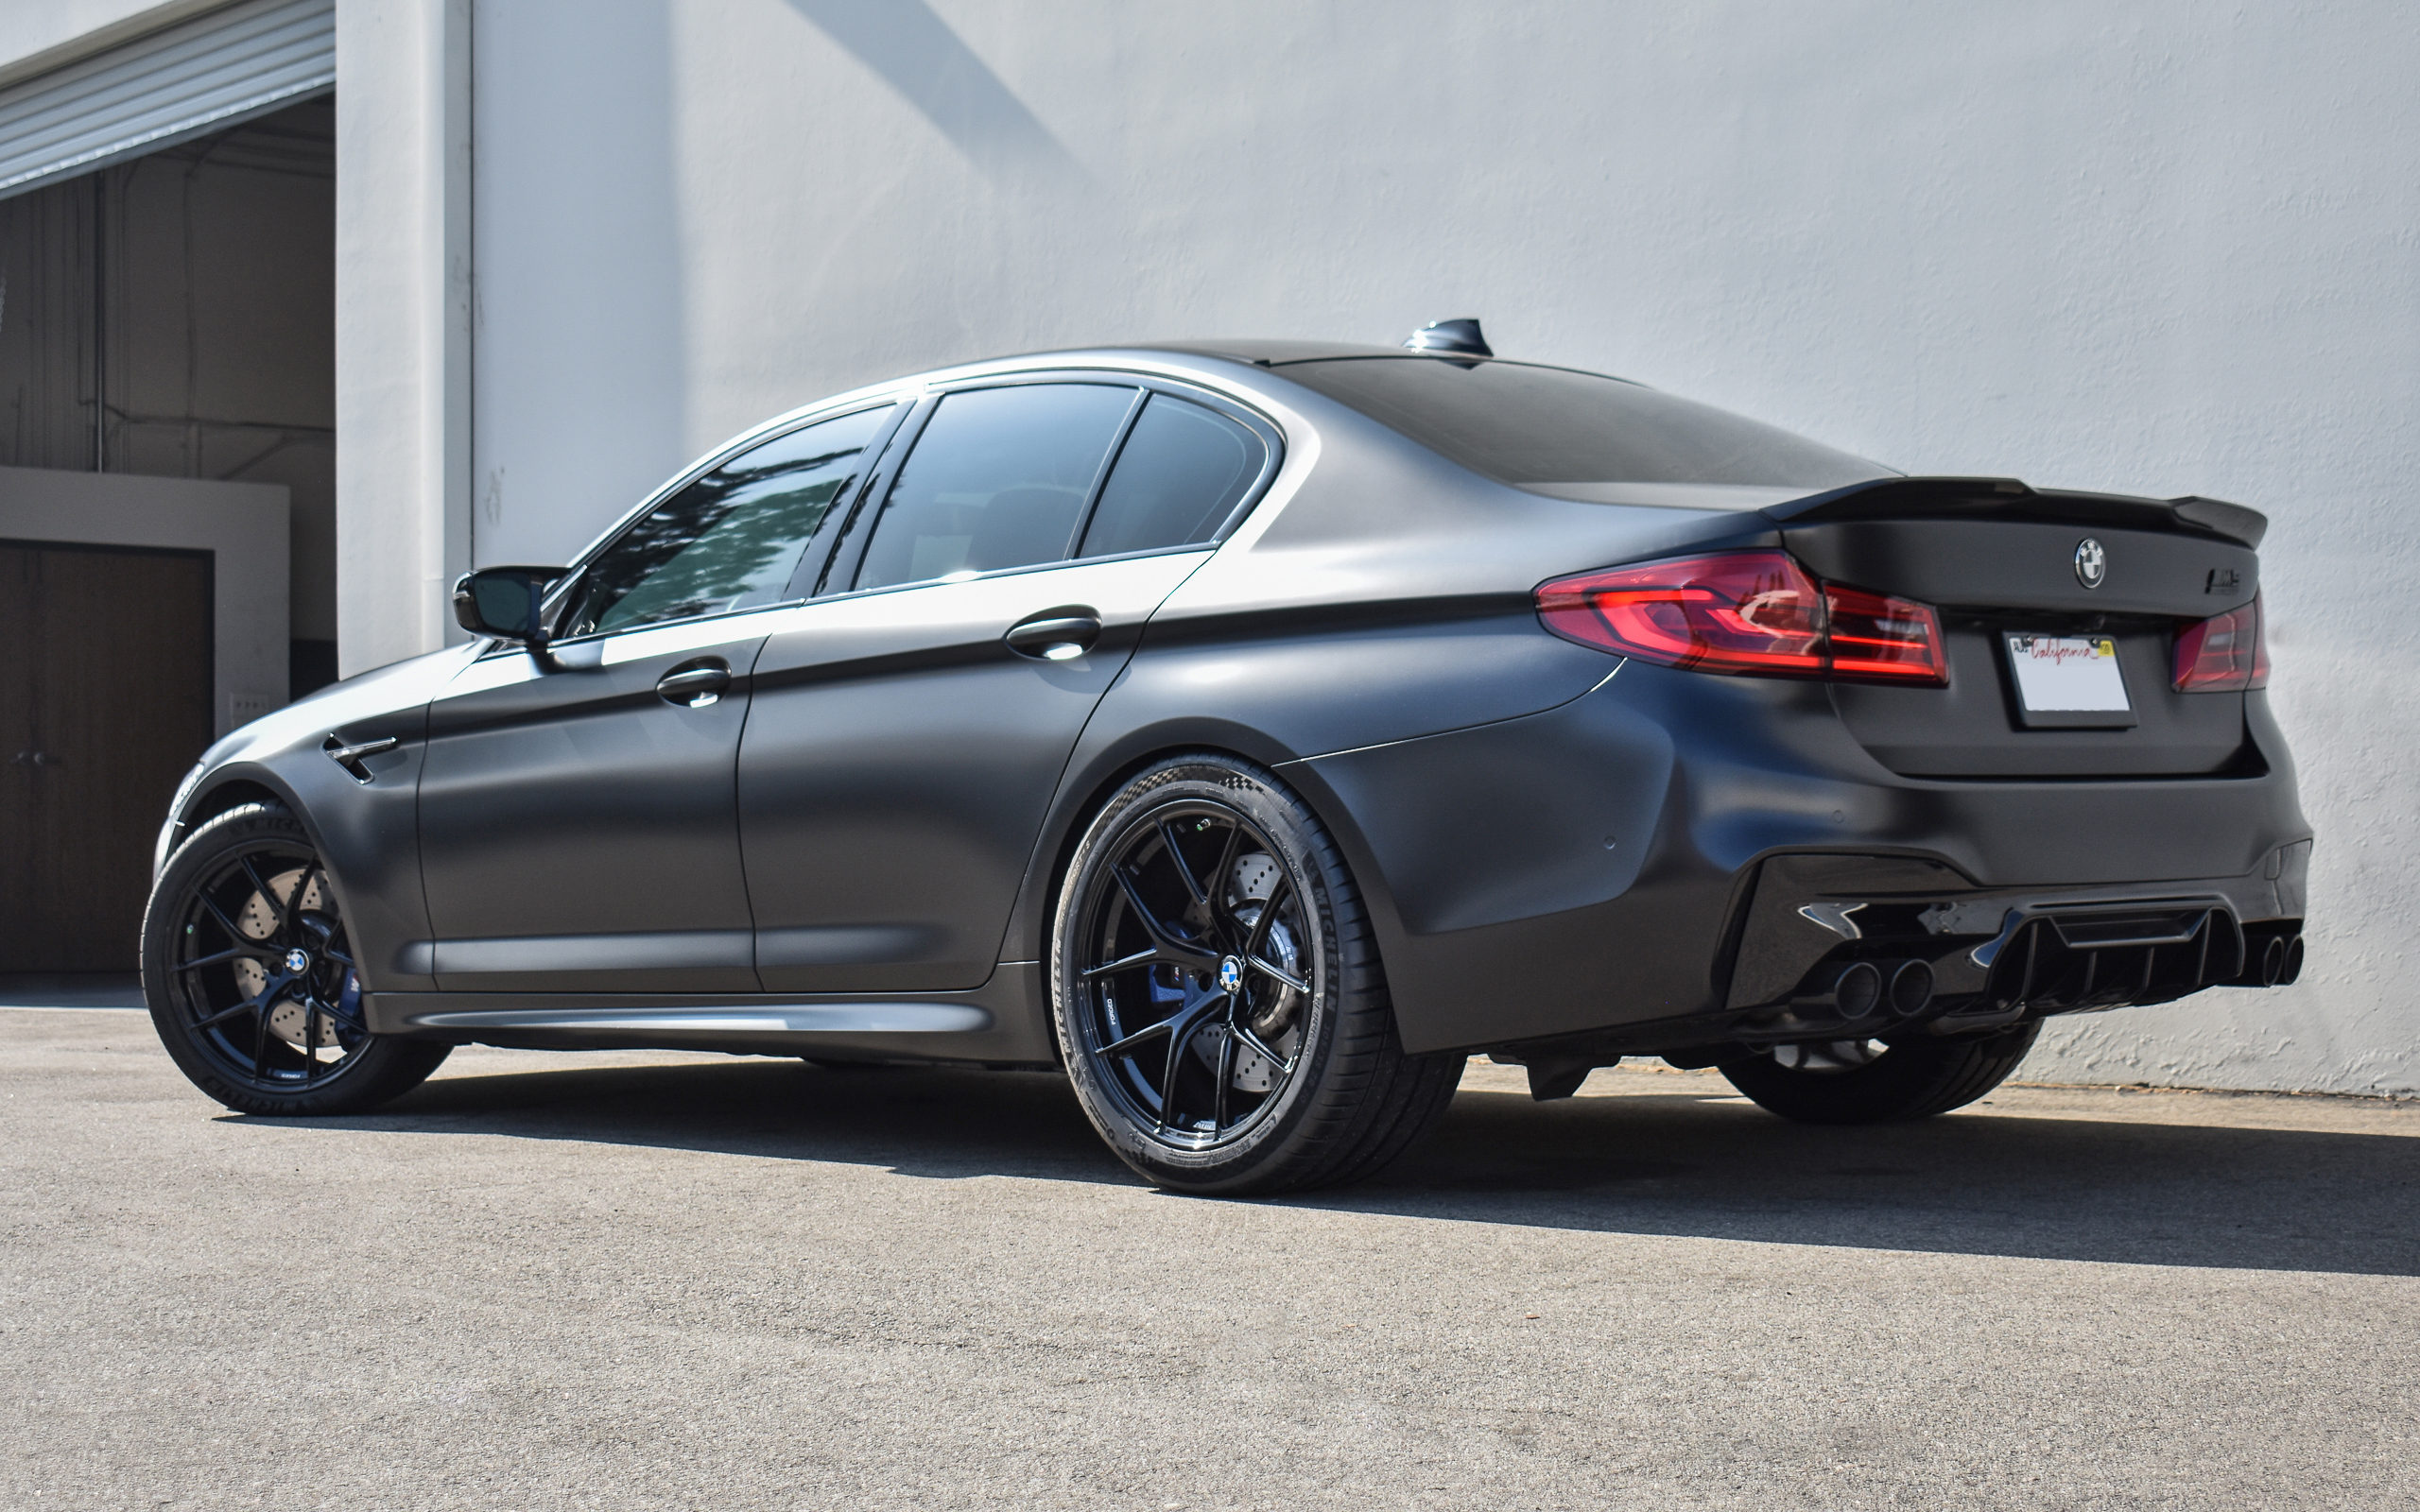 2019 F90 M5 - 20'' Titan7 T-S5 (Wicked Black)